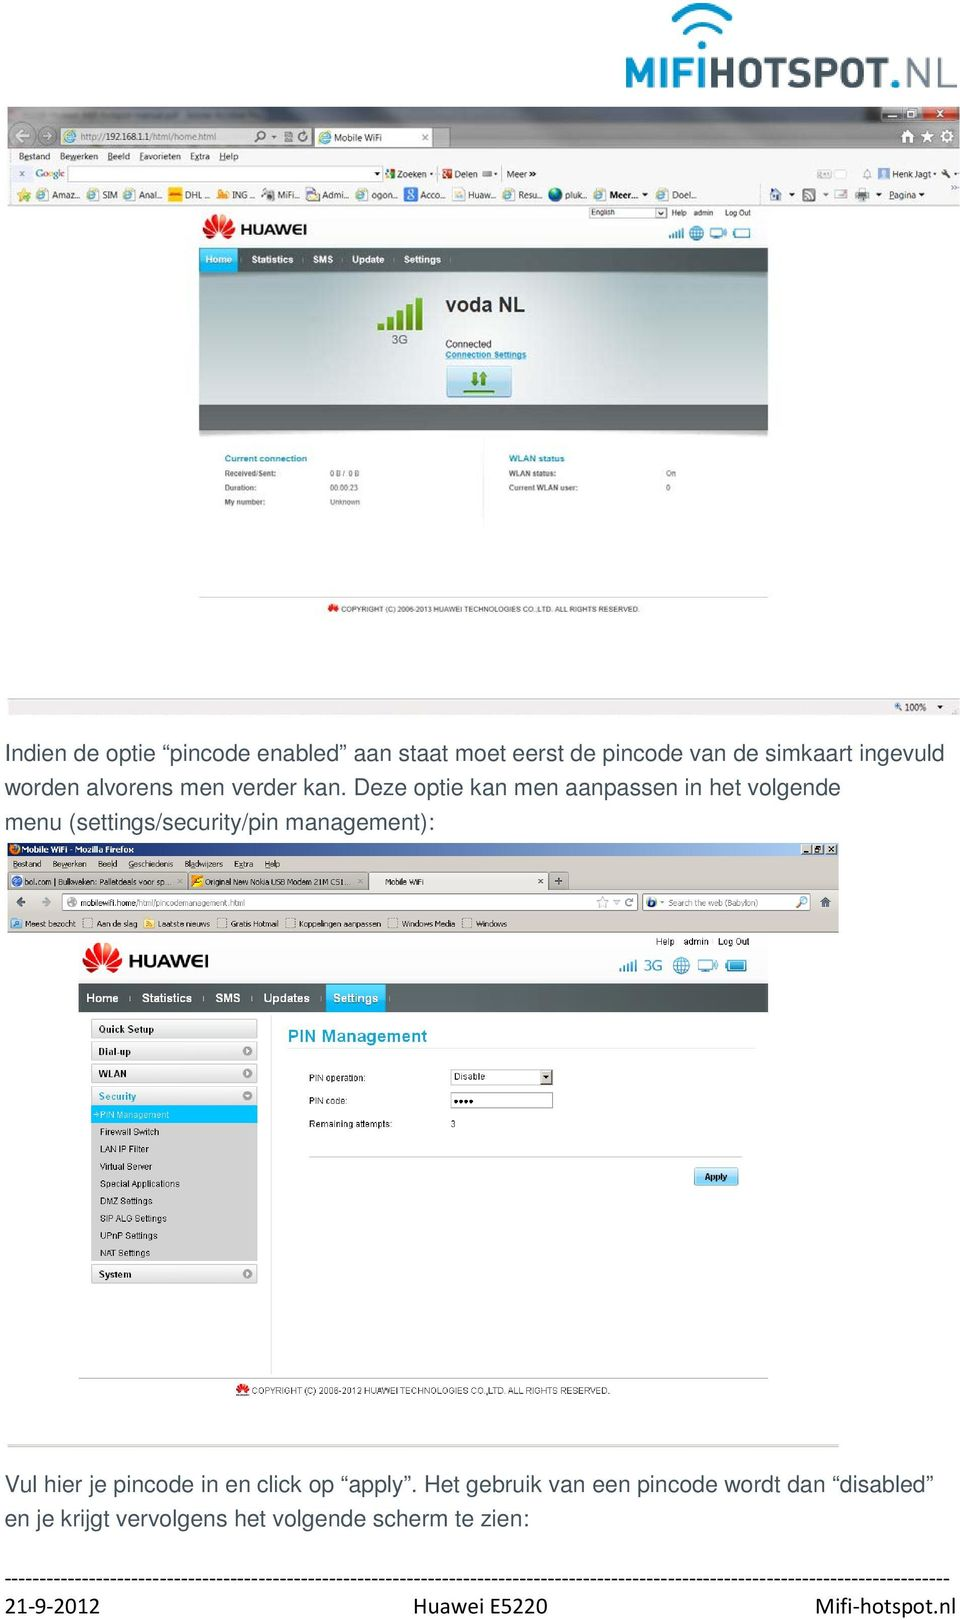 Deze optie kan men aanpassen in het volgende menu (settings/security/pin management):